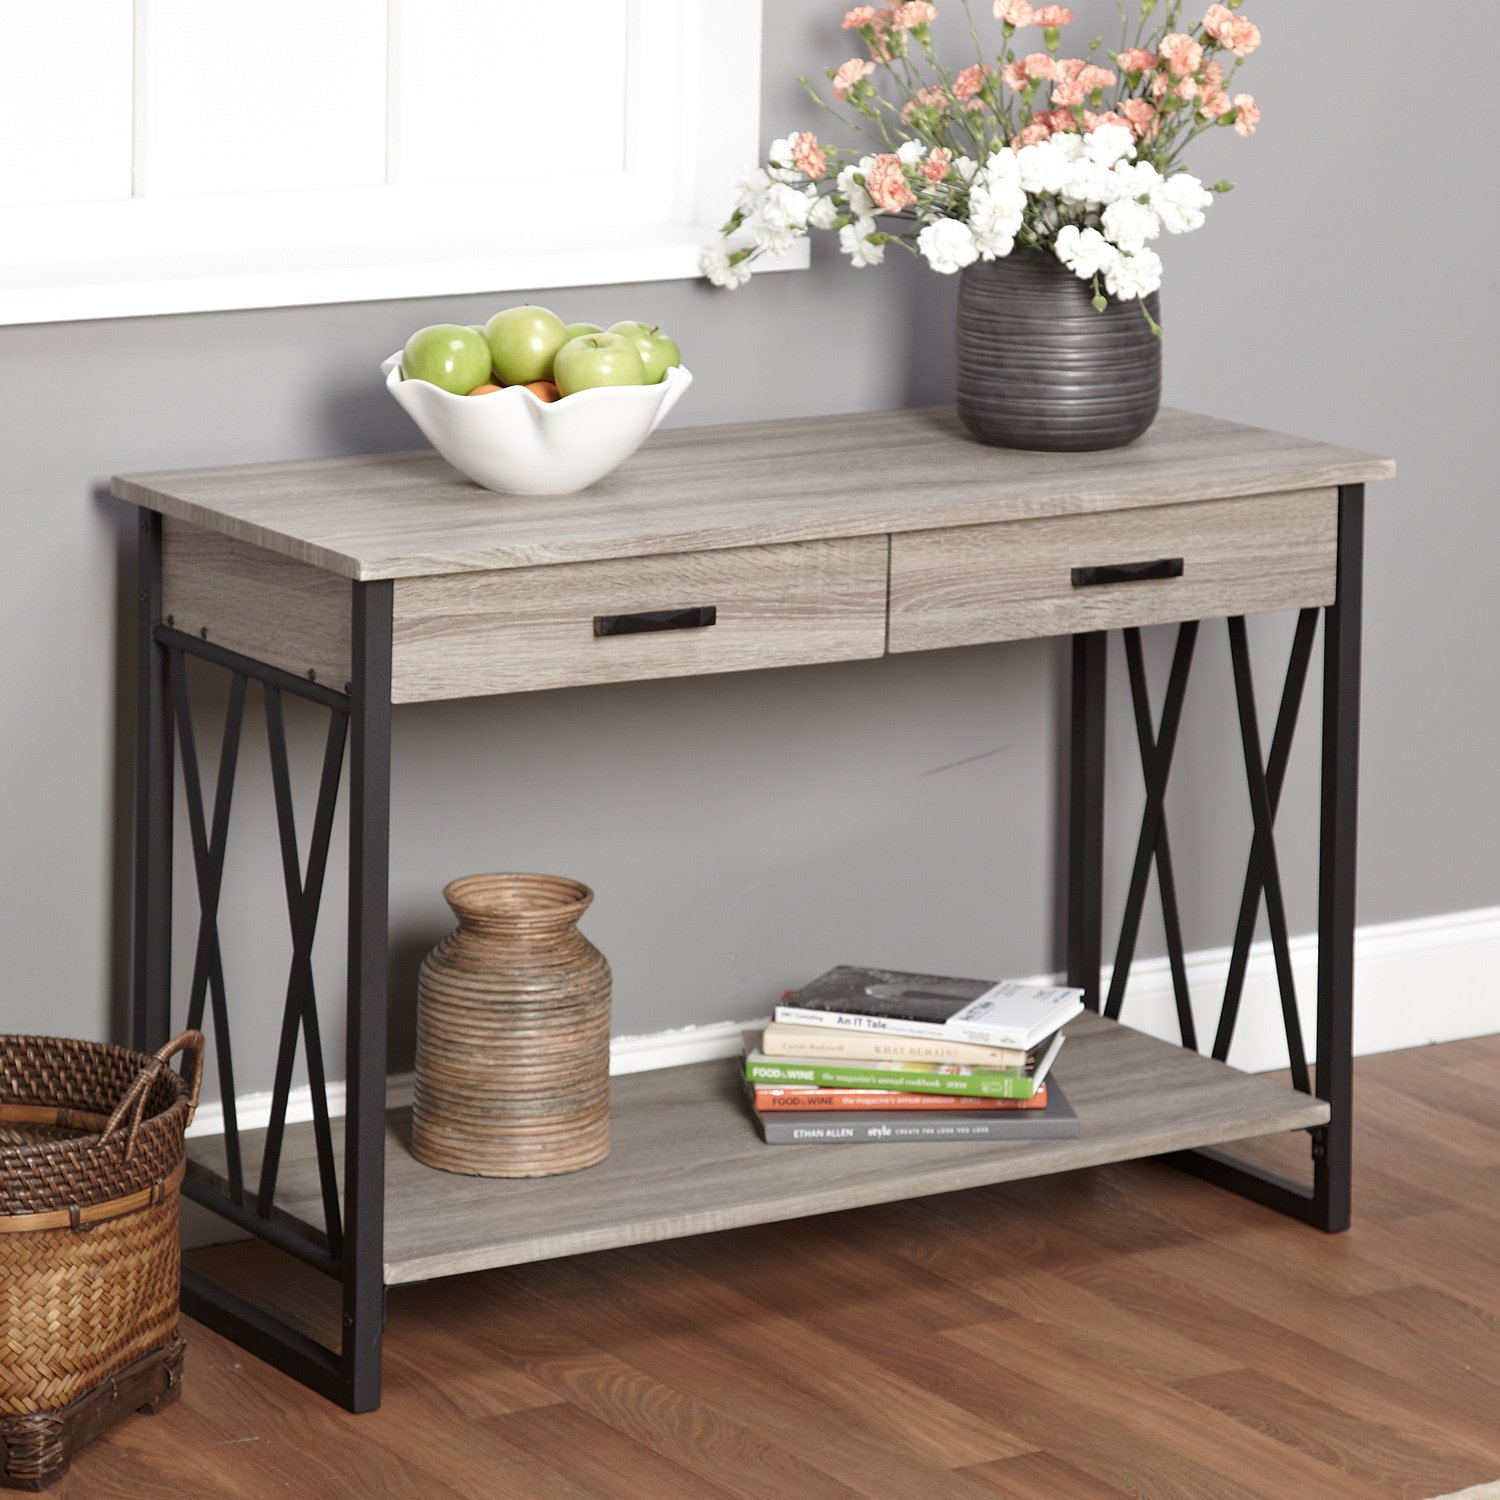 Console sofa table living home furniture decor room for Living room table decor